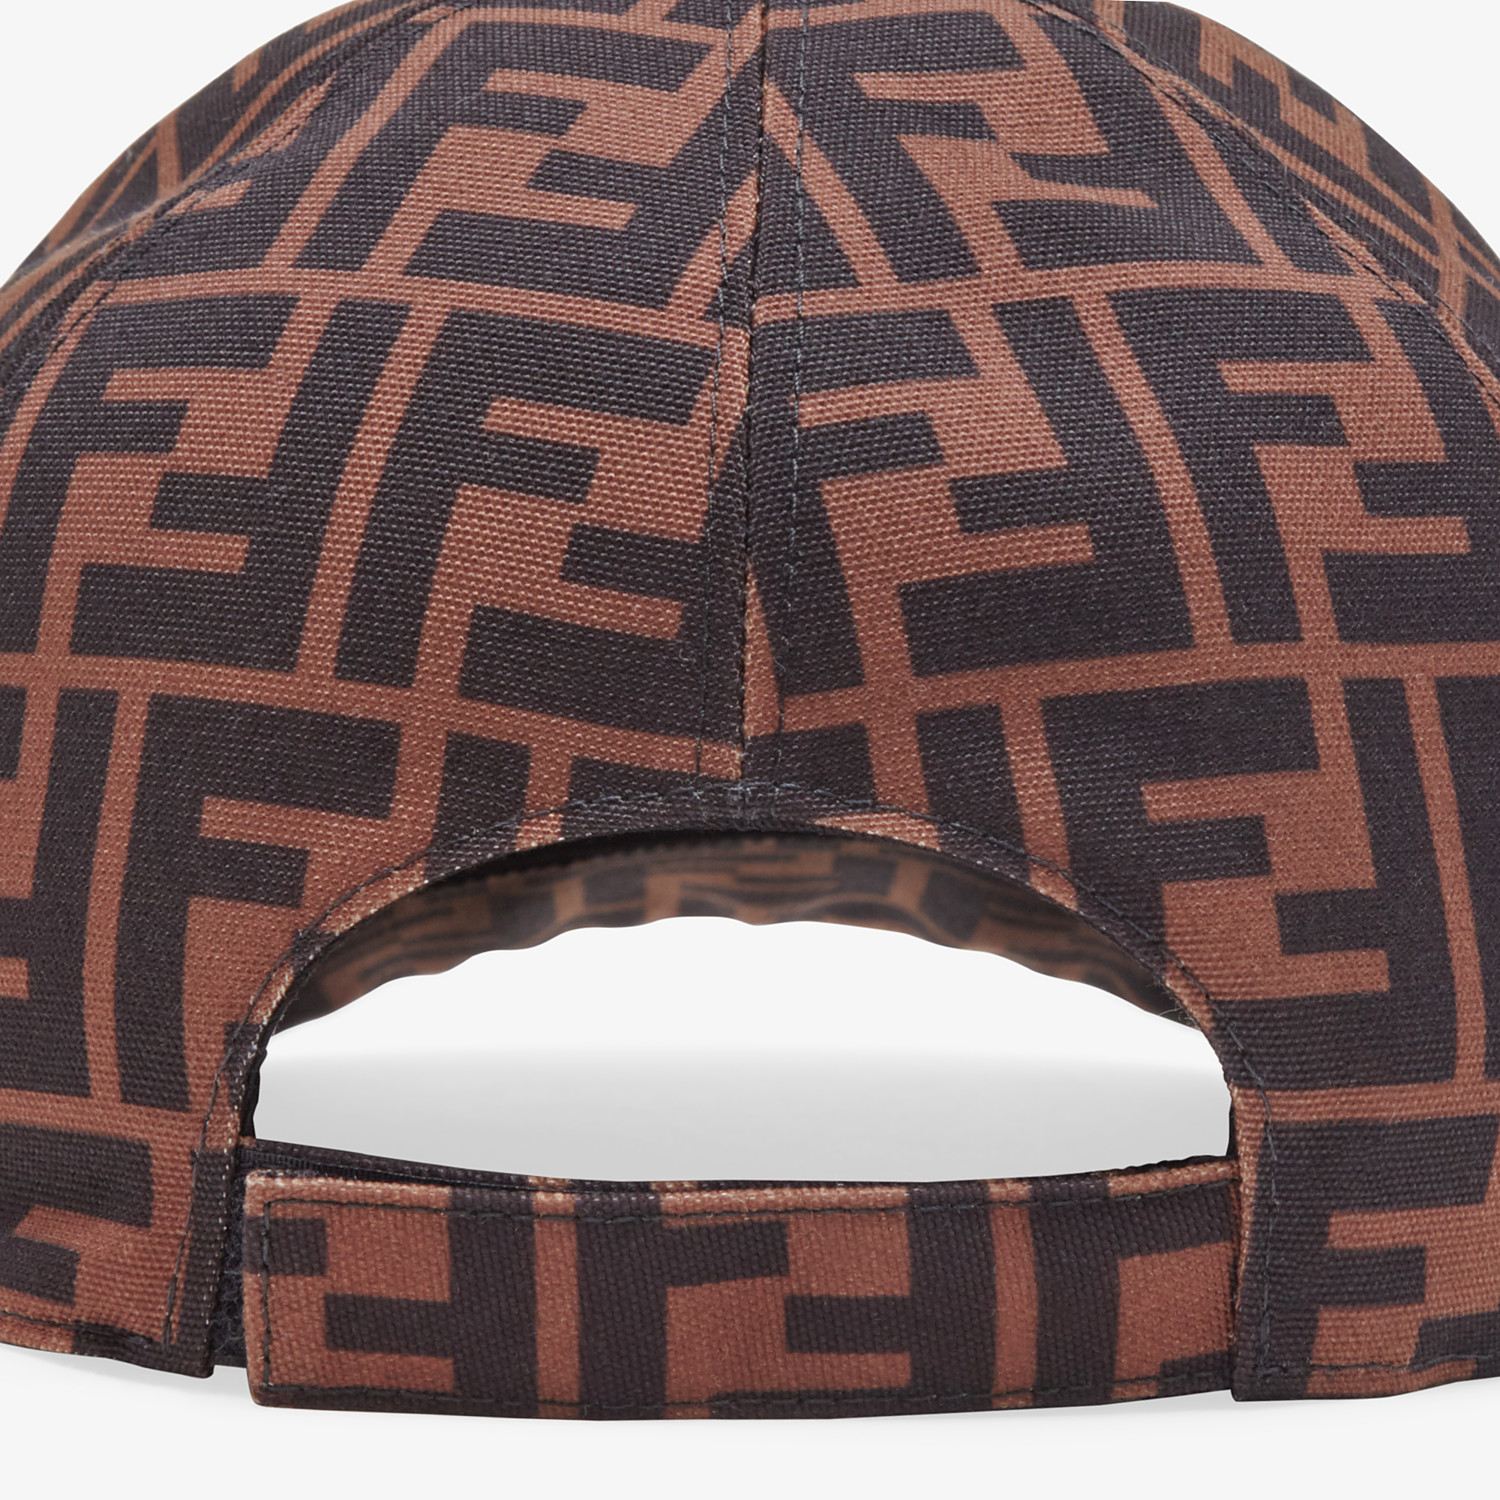 FENDI HAT - Multicolor canvas baseball cap - view 2 detail